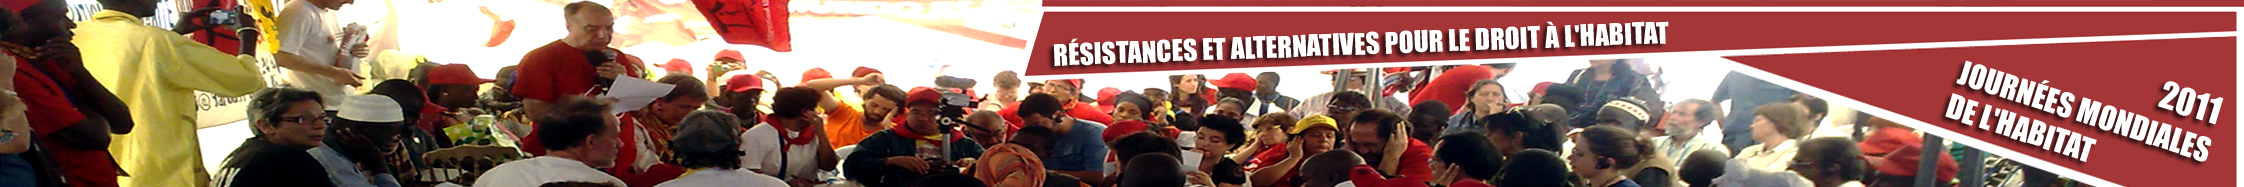 World Habitat Days: Resistance